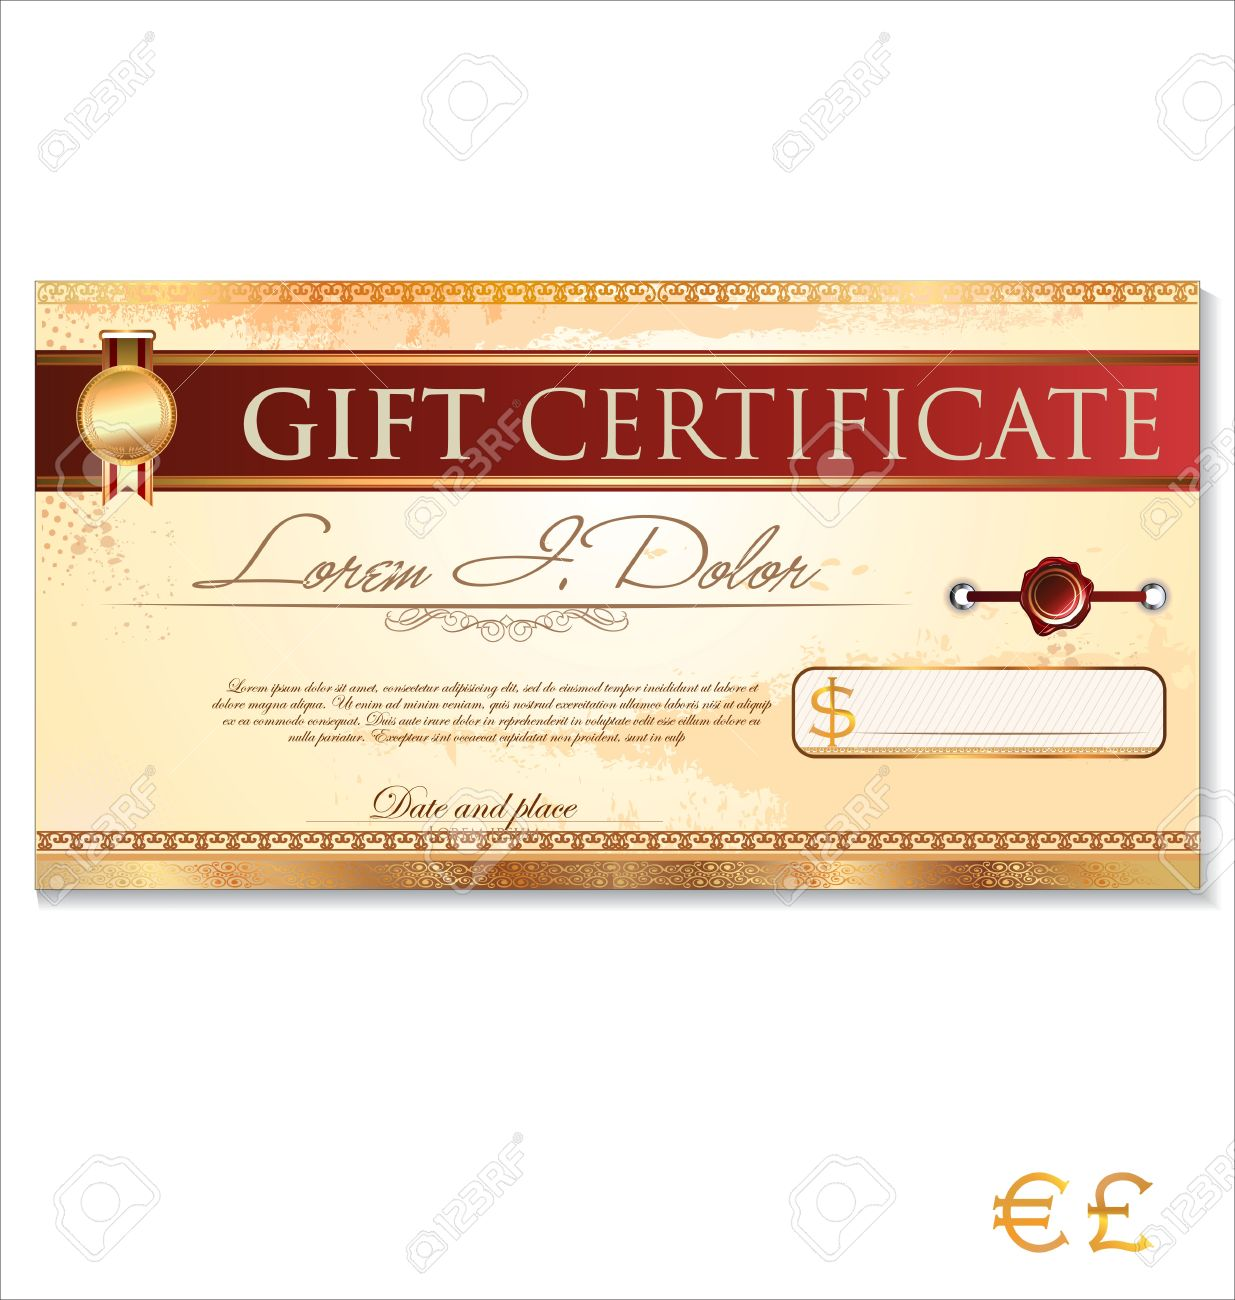 16 699 gift certificate template stock vector illustration and gift certificate template certificate template illustration